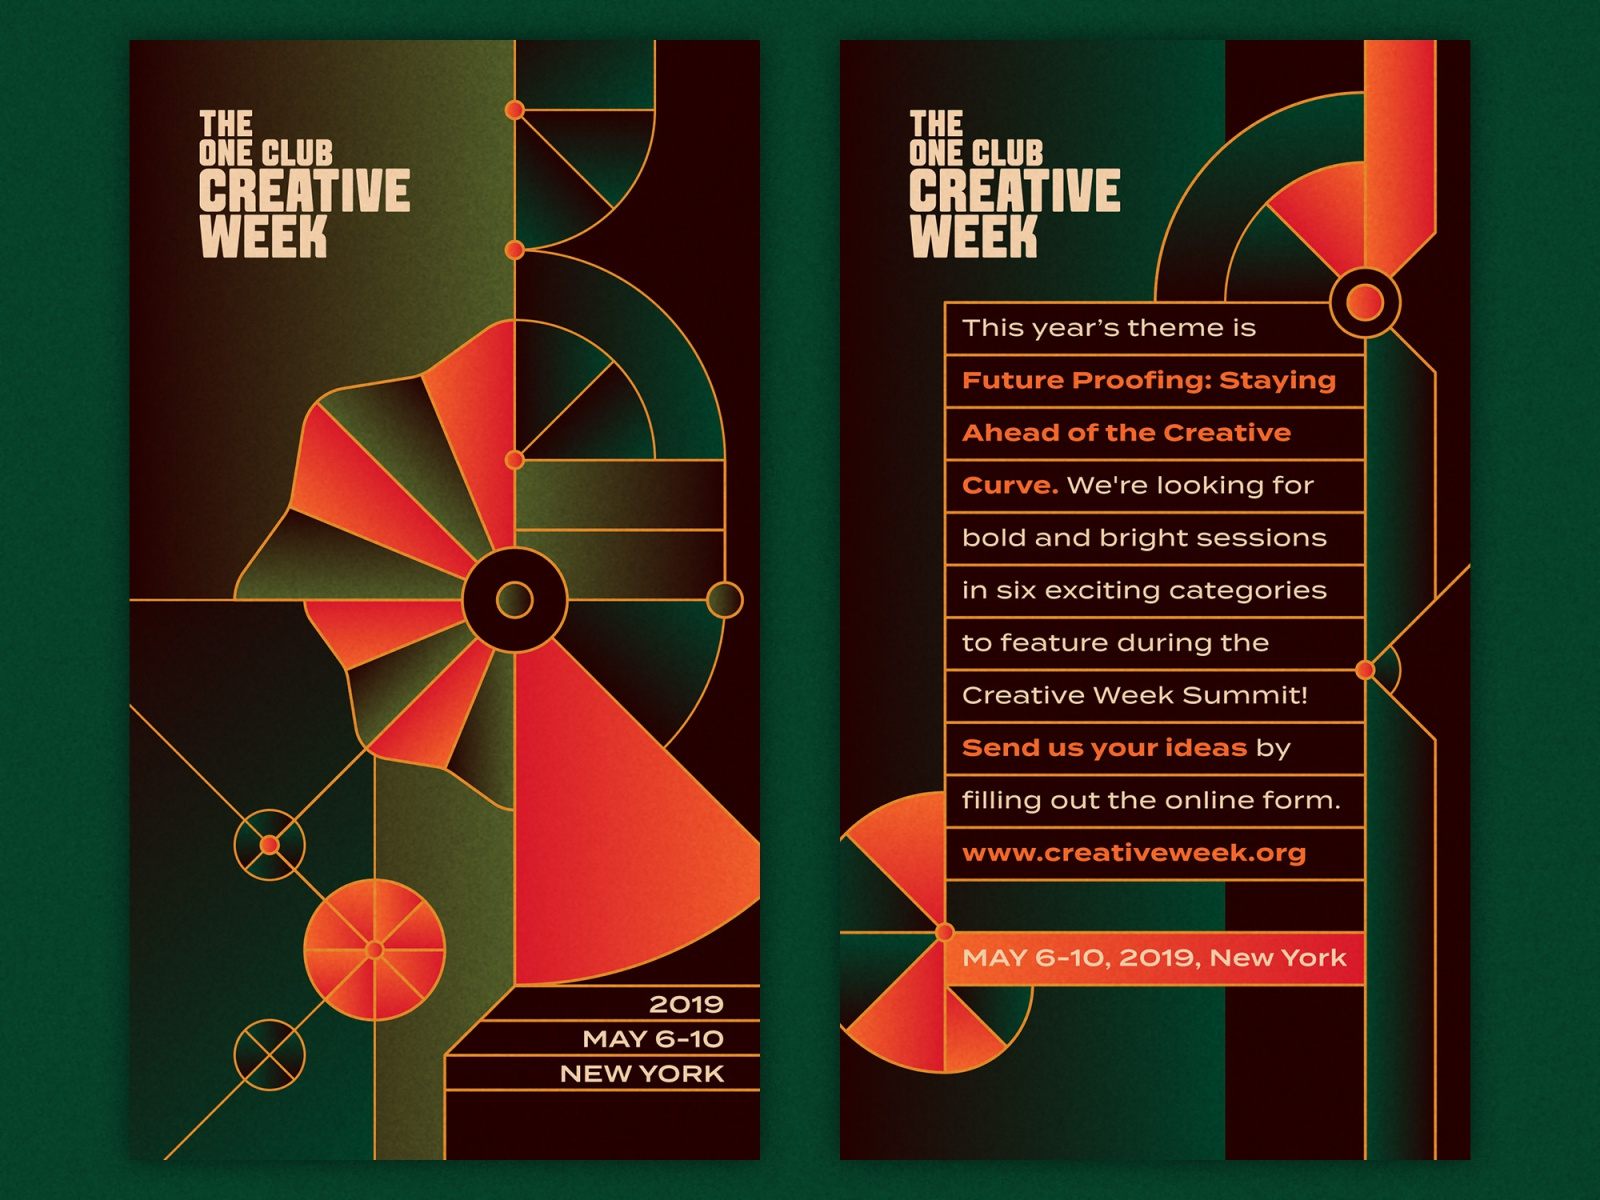 The one club creative week message system 2